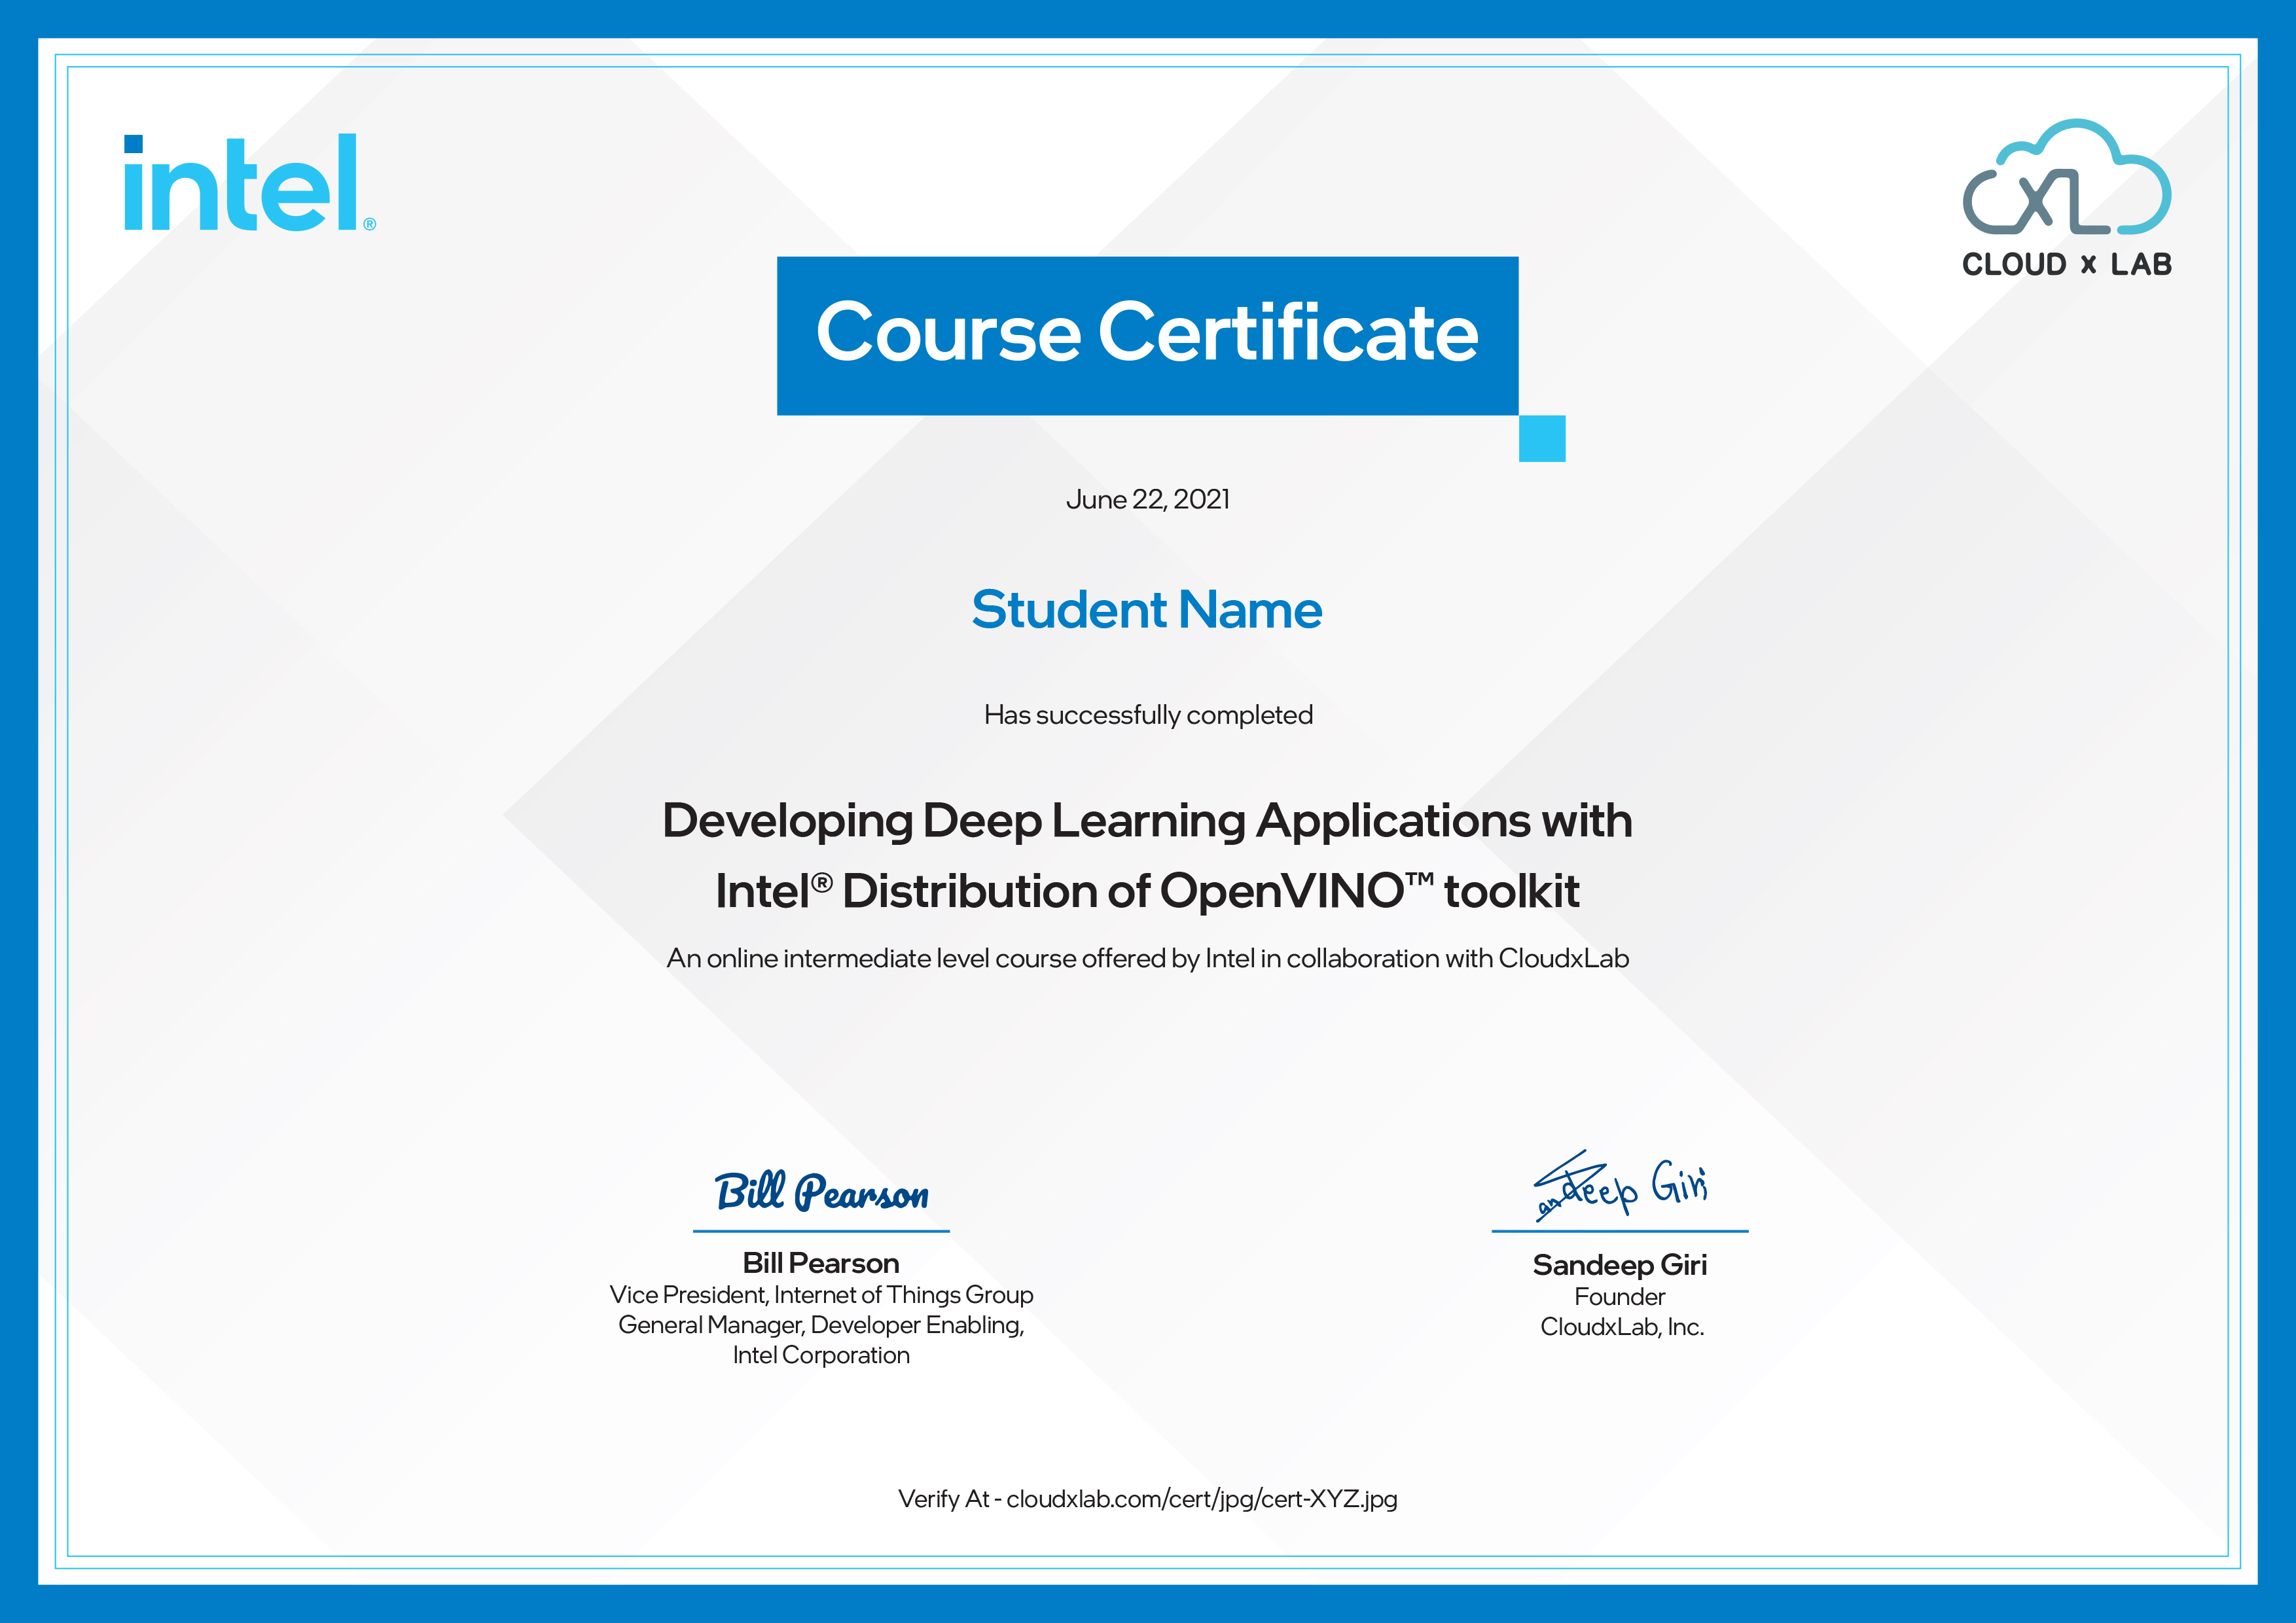 Developing Deep Learning Applications using Intel® Distribution of OpenVINO™ Toolkit